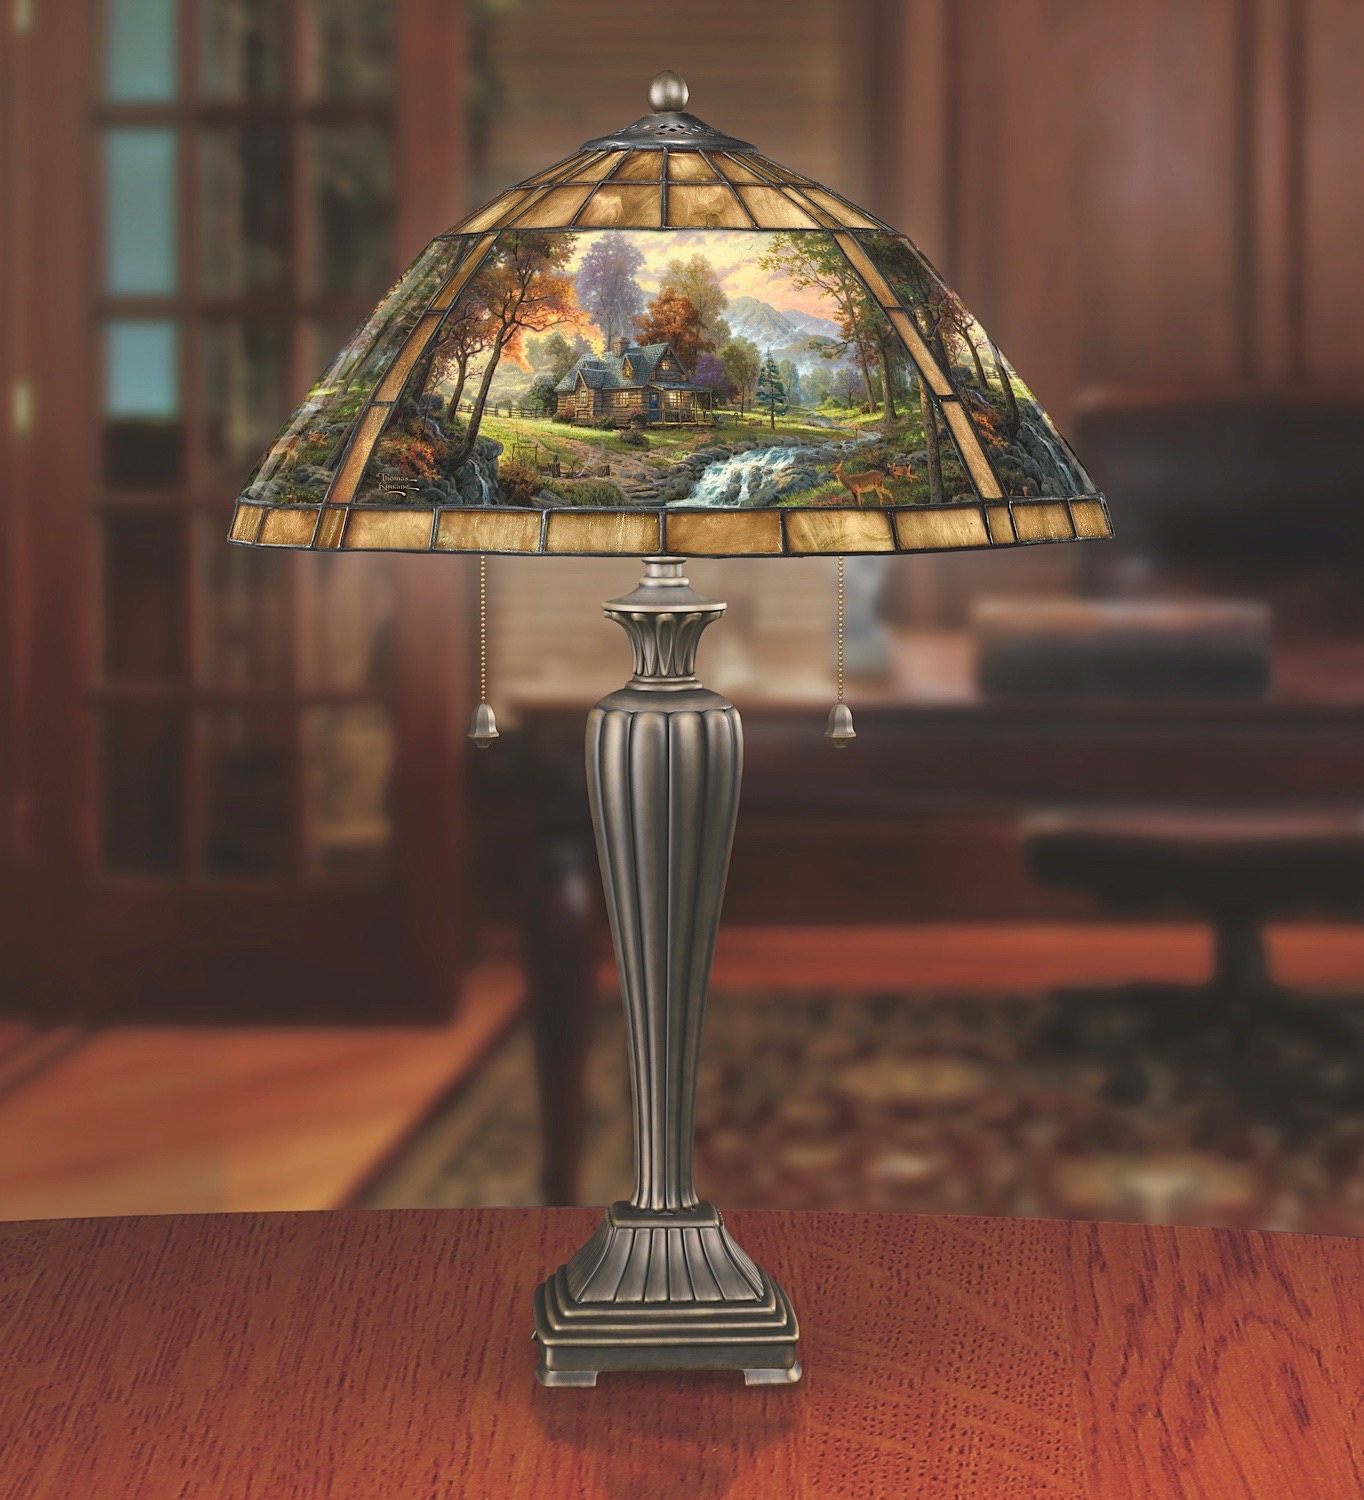 Thomas kinkade mountain retreat stained glass table lamp the stained glass table lamp bradford exchange thomas kinkade mountain retreat lamp aloadofball Choice Image